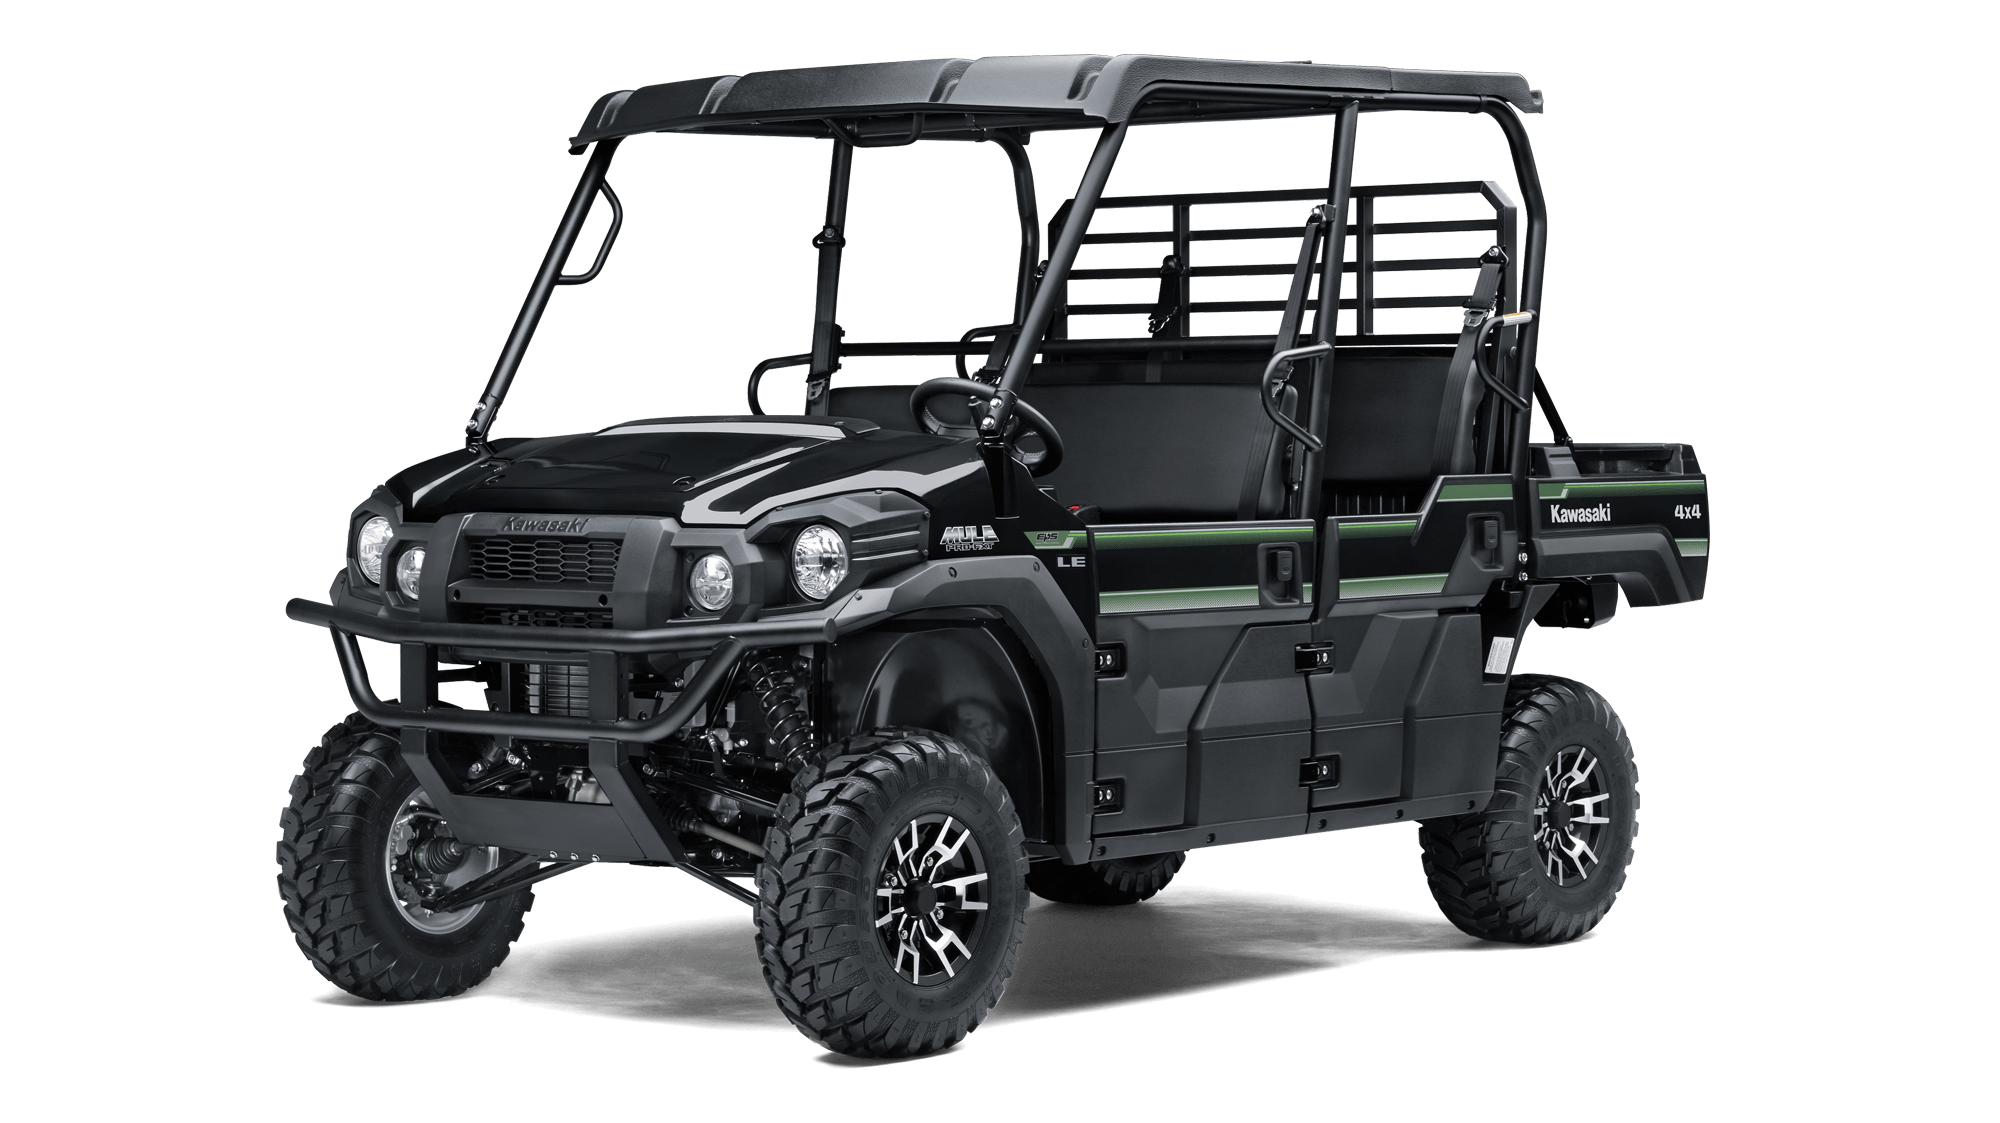 Farm Pro Utv Wiring Diagram Trusted Tractor 2019 Mule Fxt Eps Le Series Side X By Kawasaki Lights